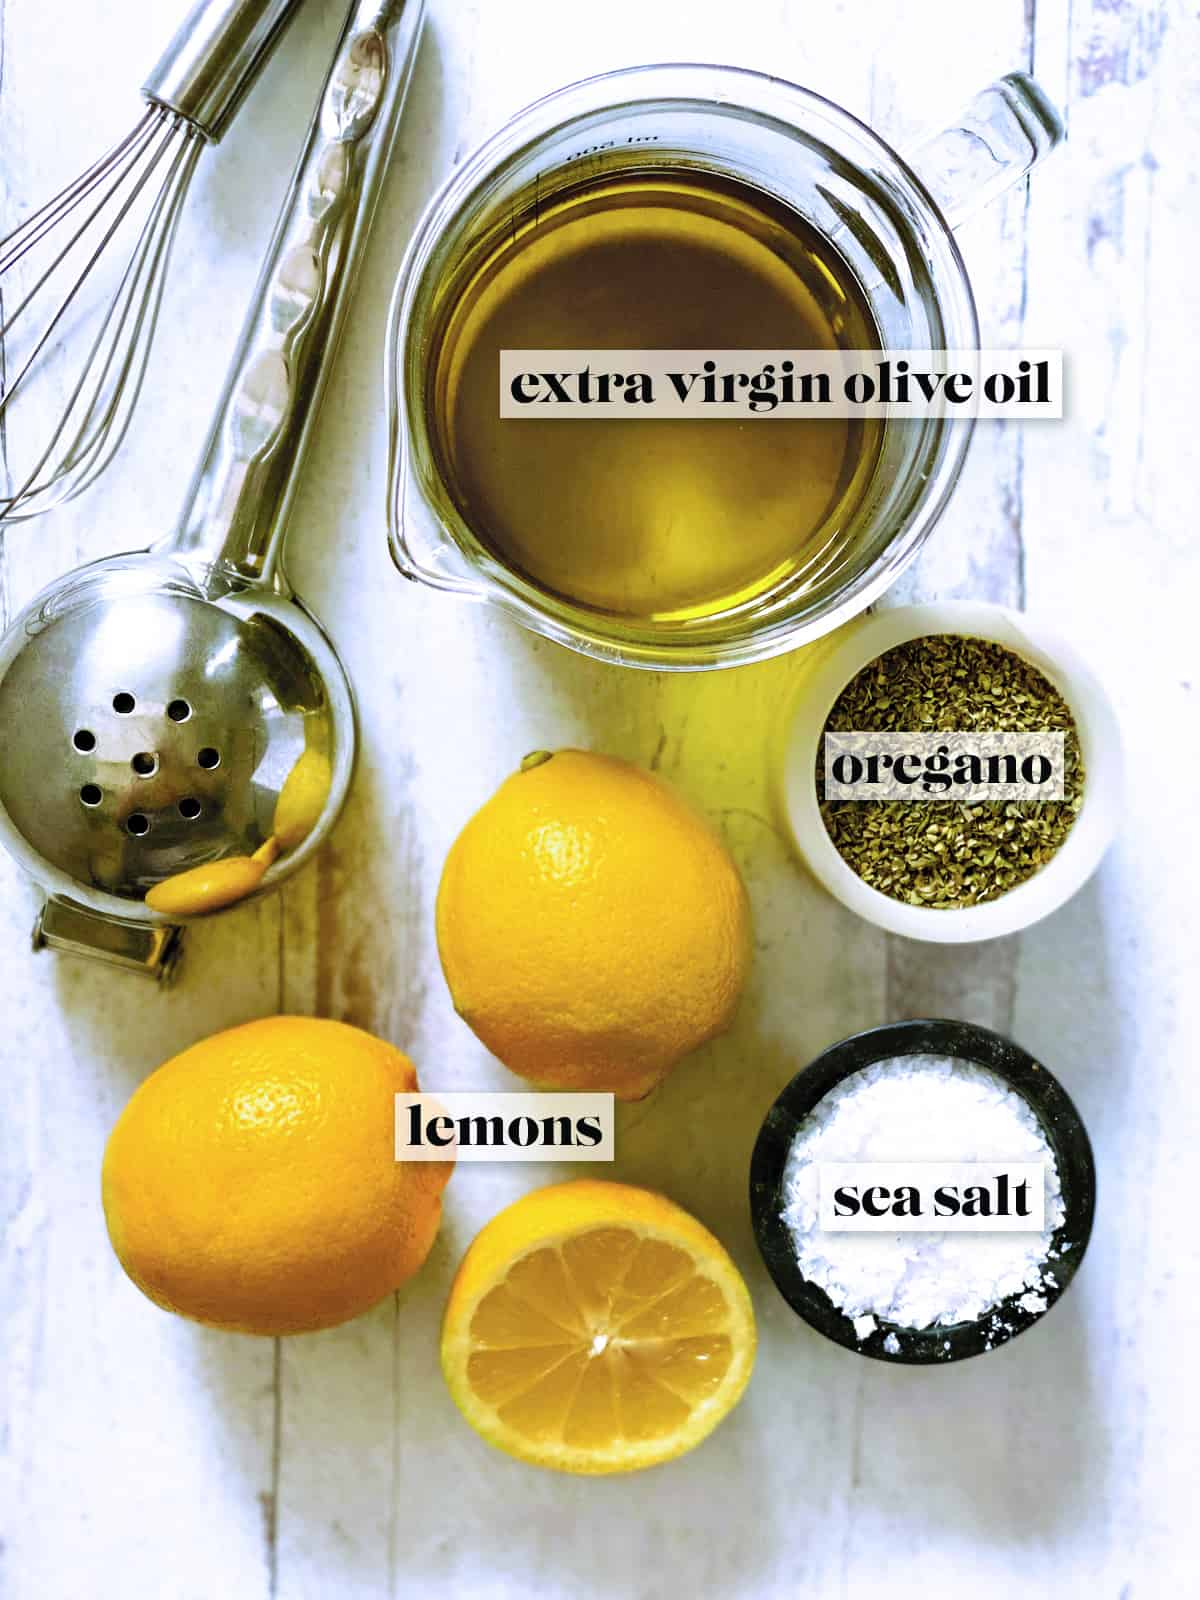 A glass jar with olive oil, a citrus juicer, a small whisk, 2 lemons and one half lemon, a pot with sea salt and another with dry oregano.